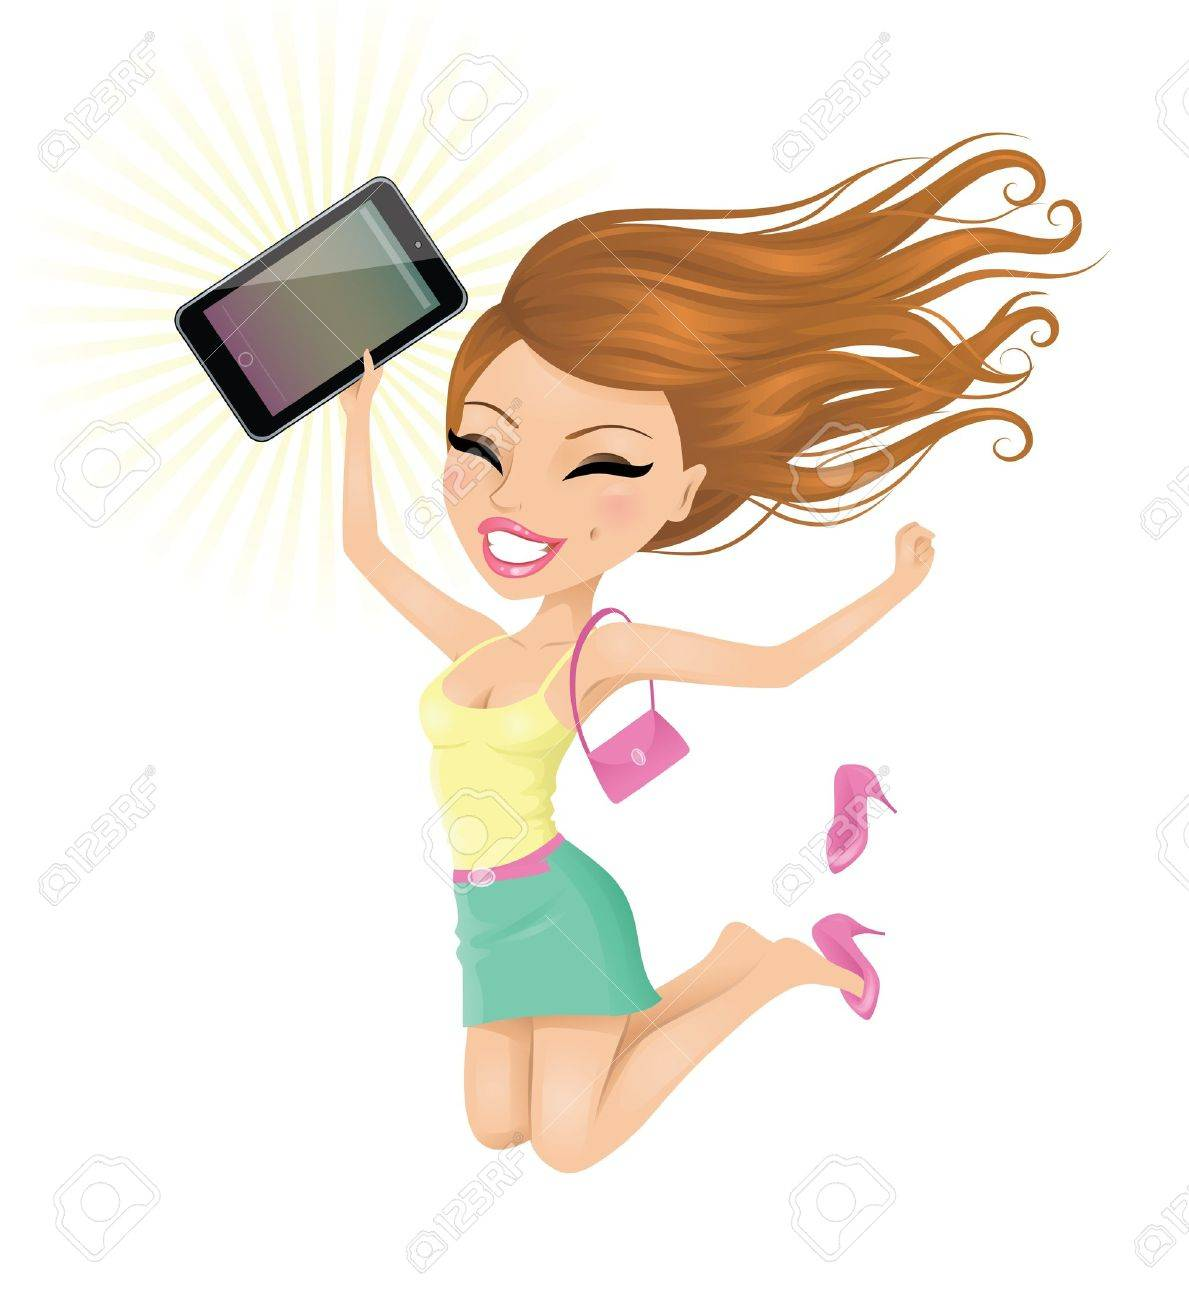 Woman happy with her touch pad. Stock Vector - 15352661